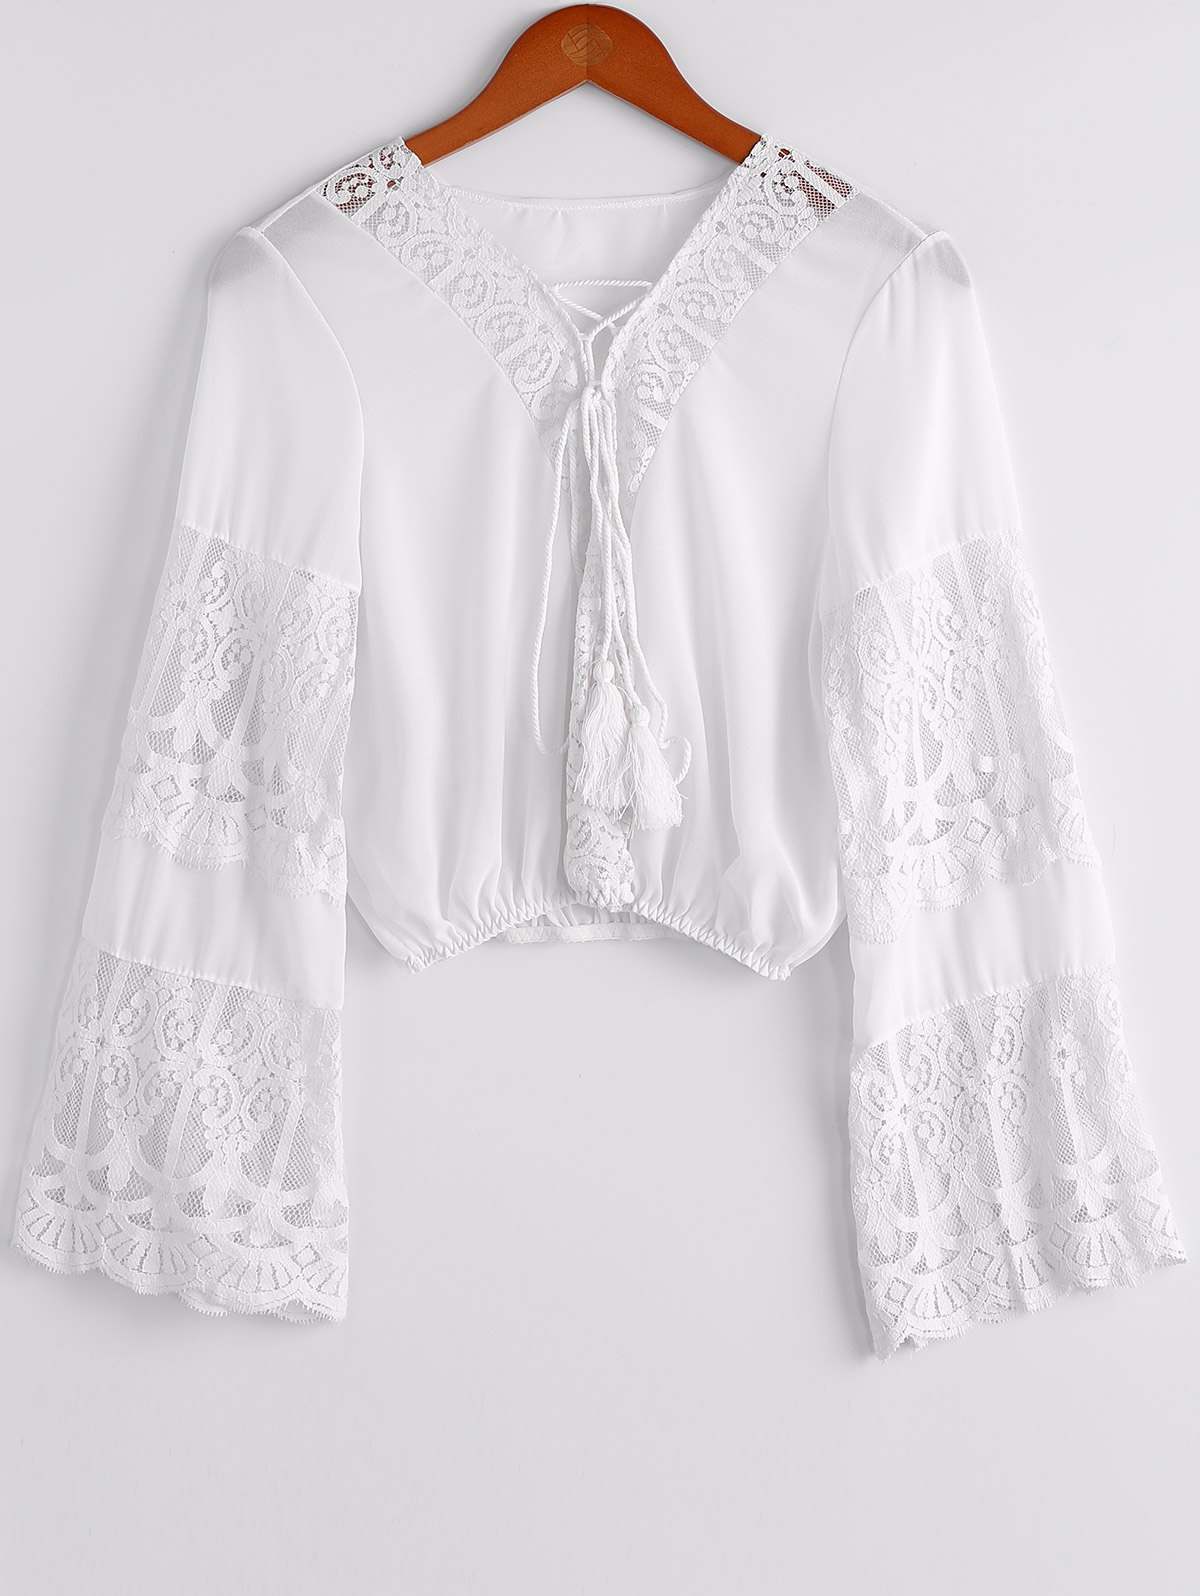 Stylish Women's Plunging Neckline Lace Splicing Flare Sleeve Crop Top - WHITE ONE SIZE(FIT SIZE XS TO M)